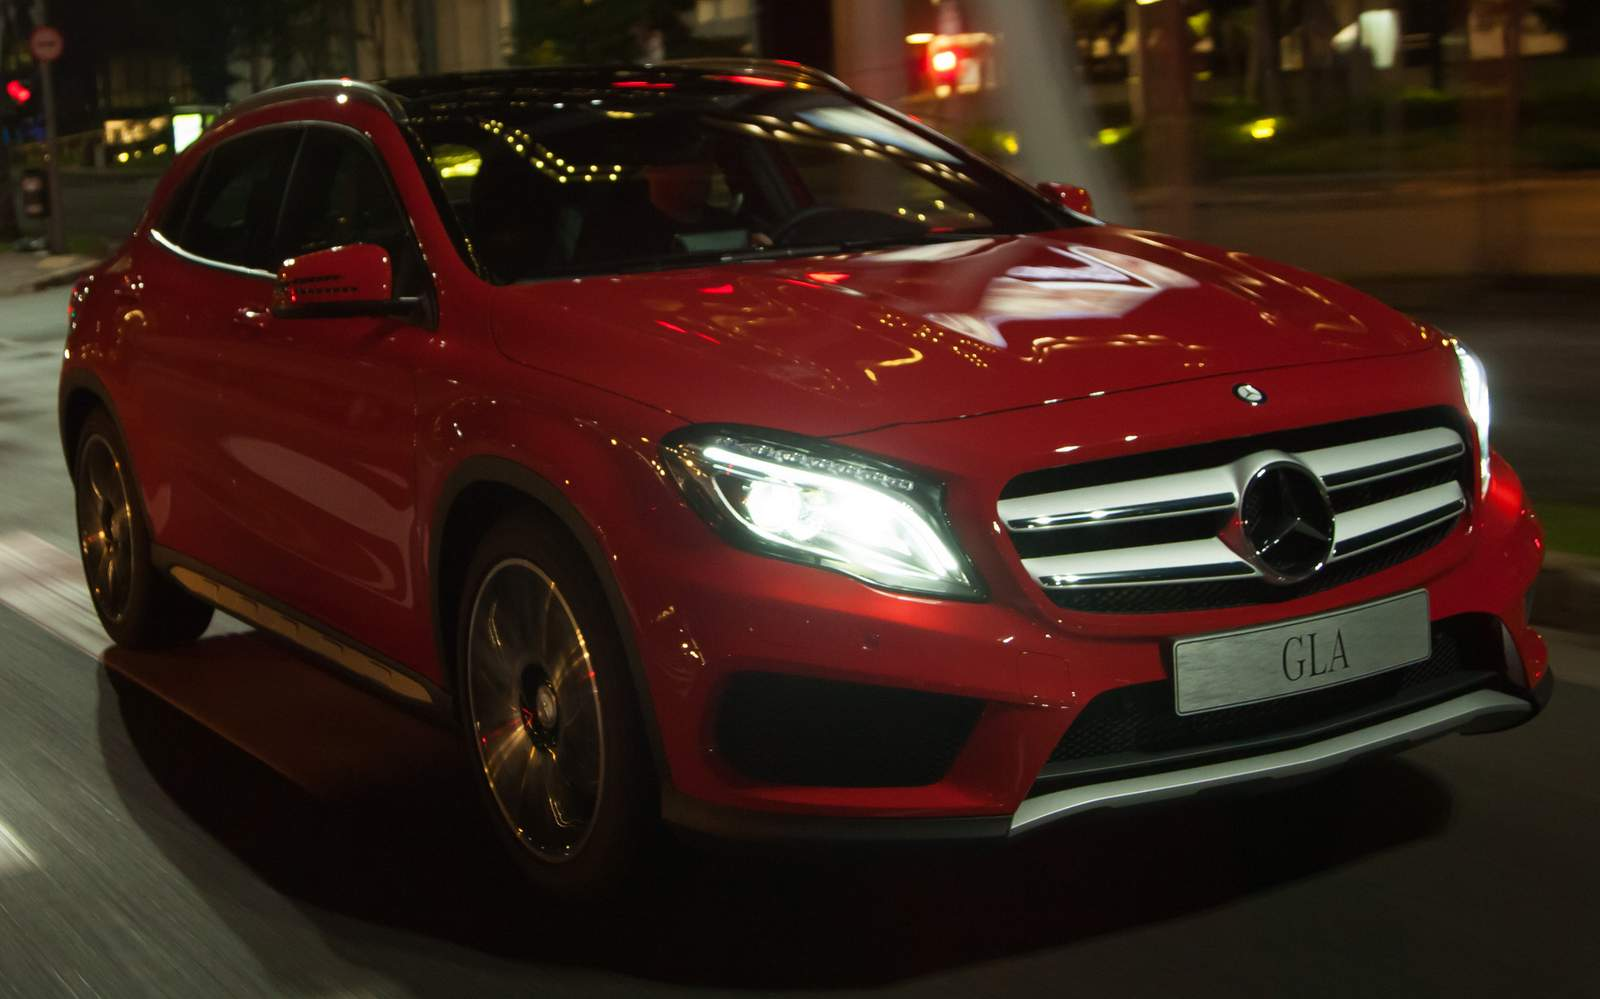 Mercedes-Benz GLA 2015